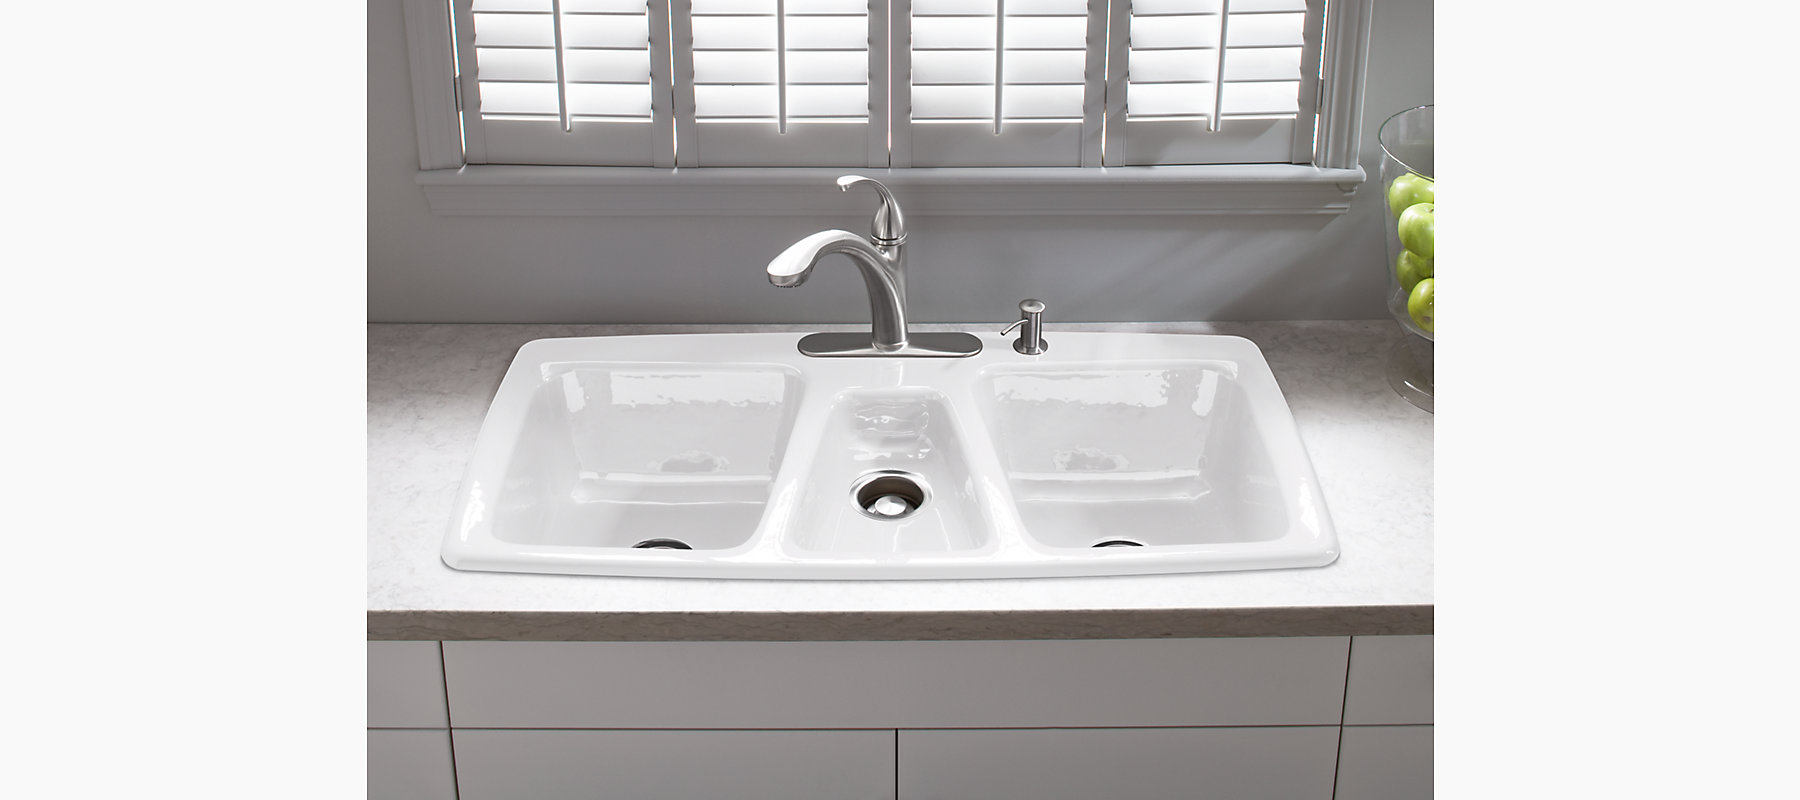 Trieste top mount kitchen sink with four faucet holes k for Best faucet for kitchen sink